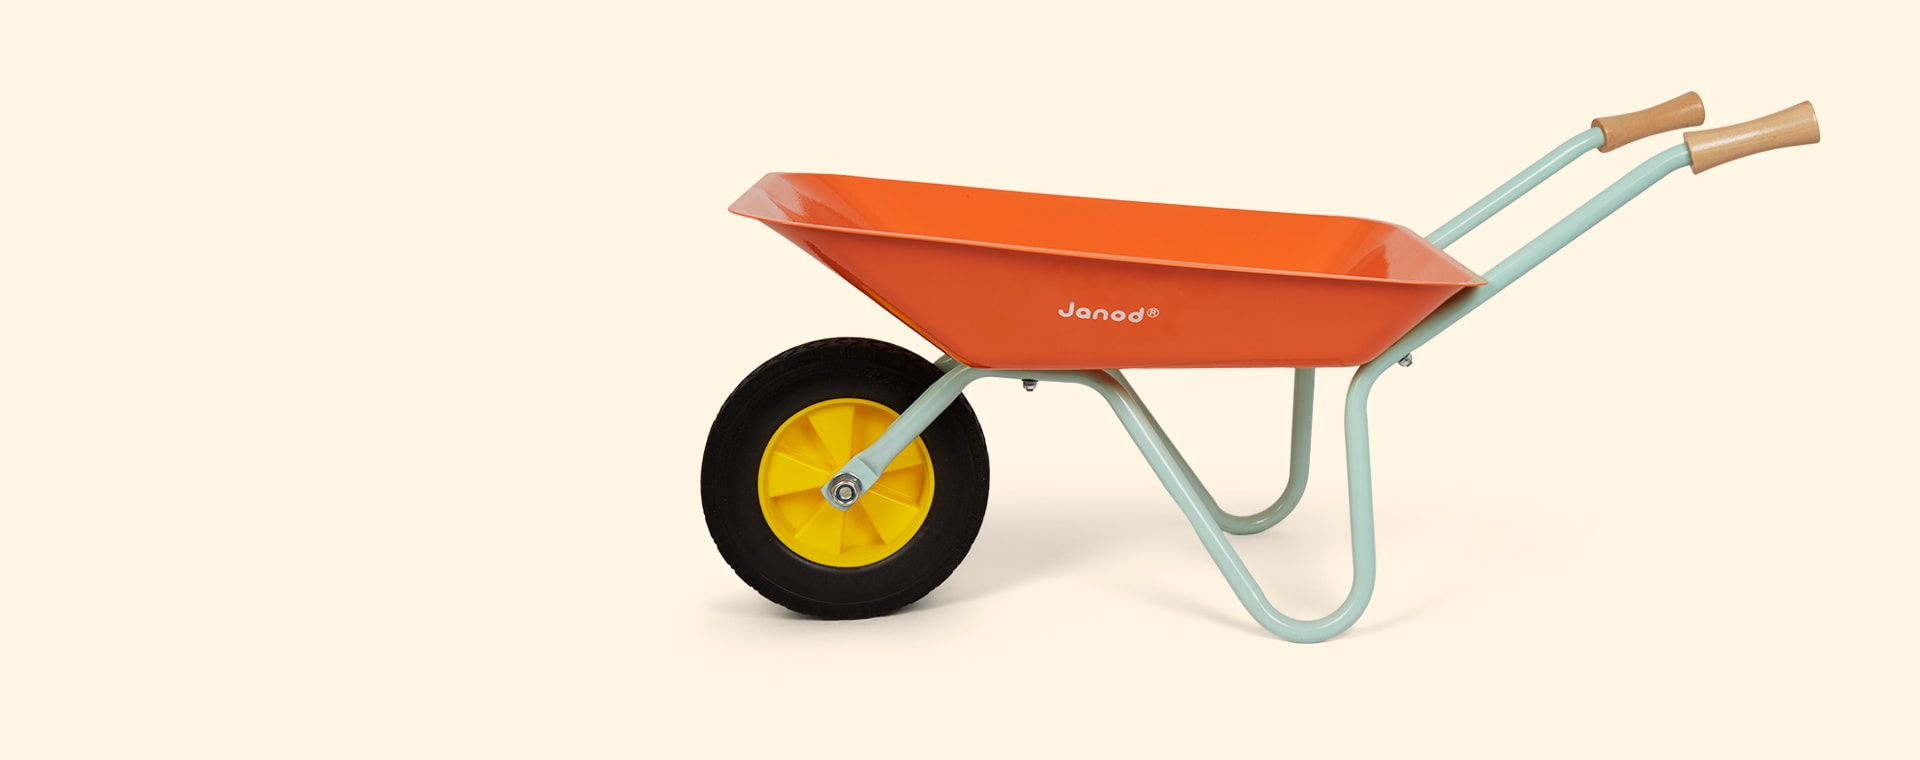 Orange Janod Metal Wheelbarrow